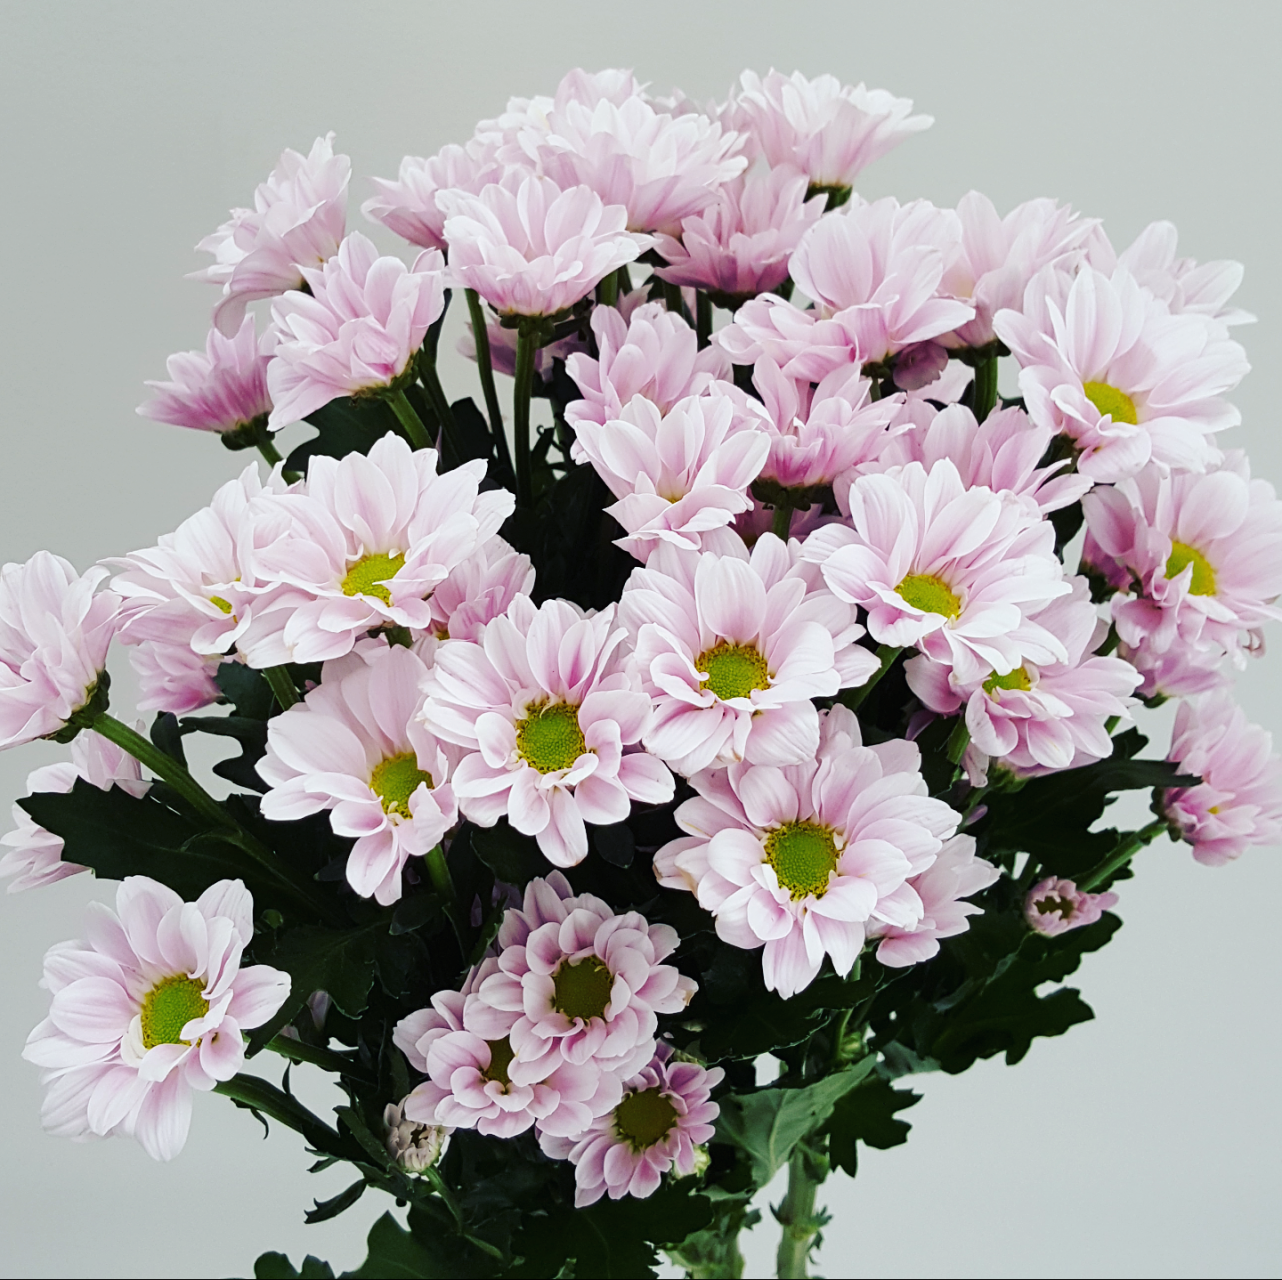 Pale pink daisy